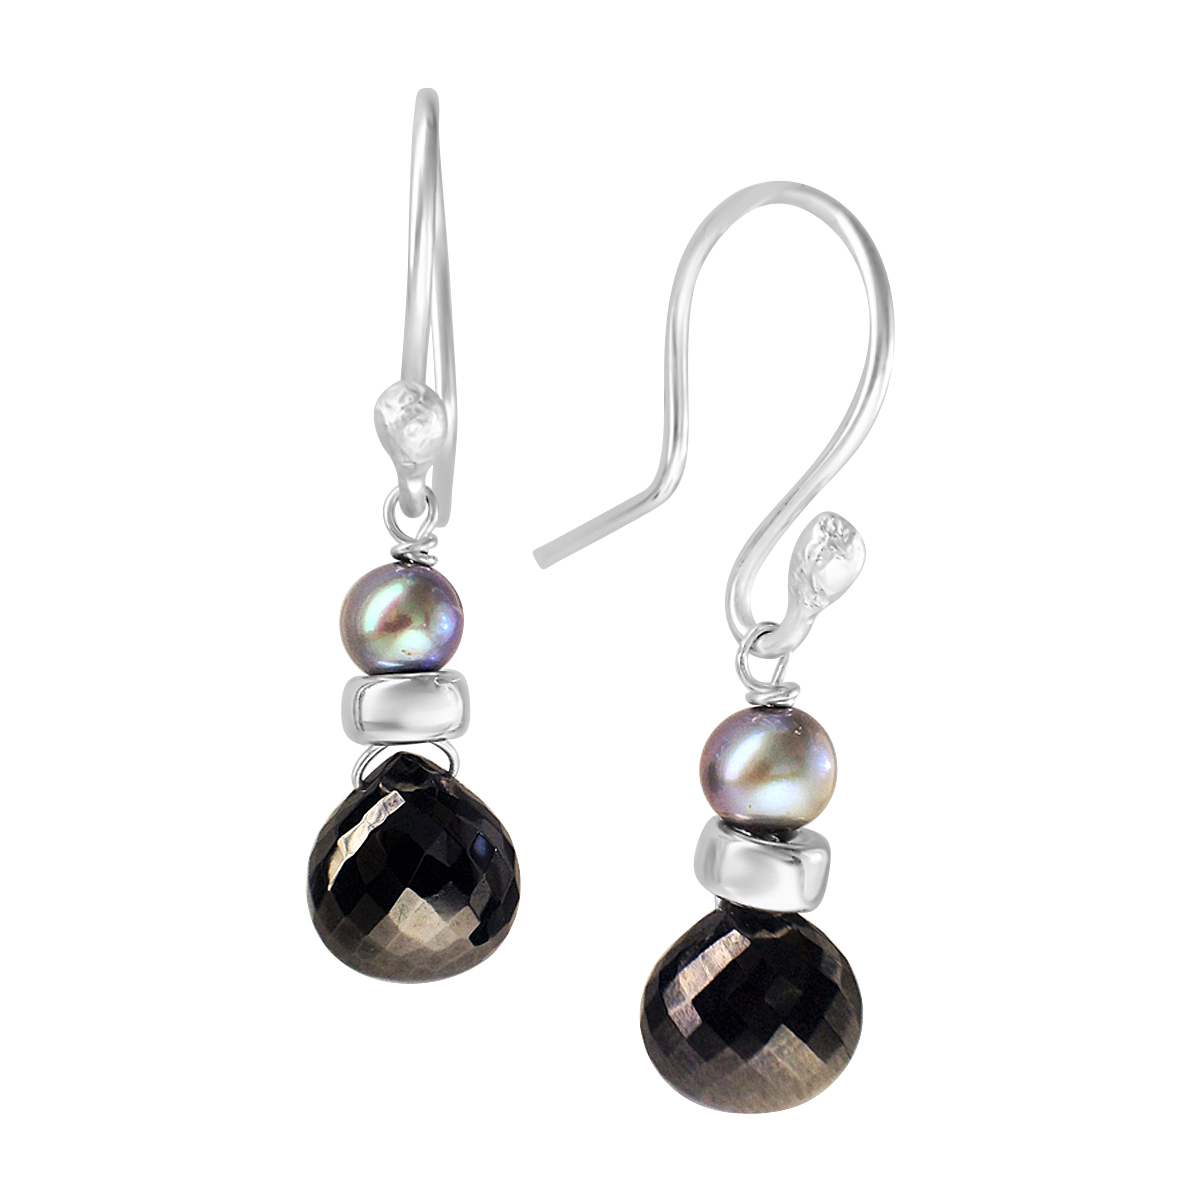 Perfume Bottle black spinel blue pearl earrings